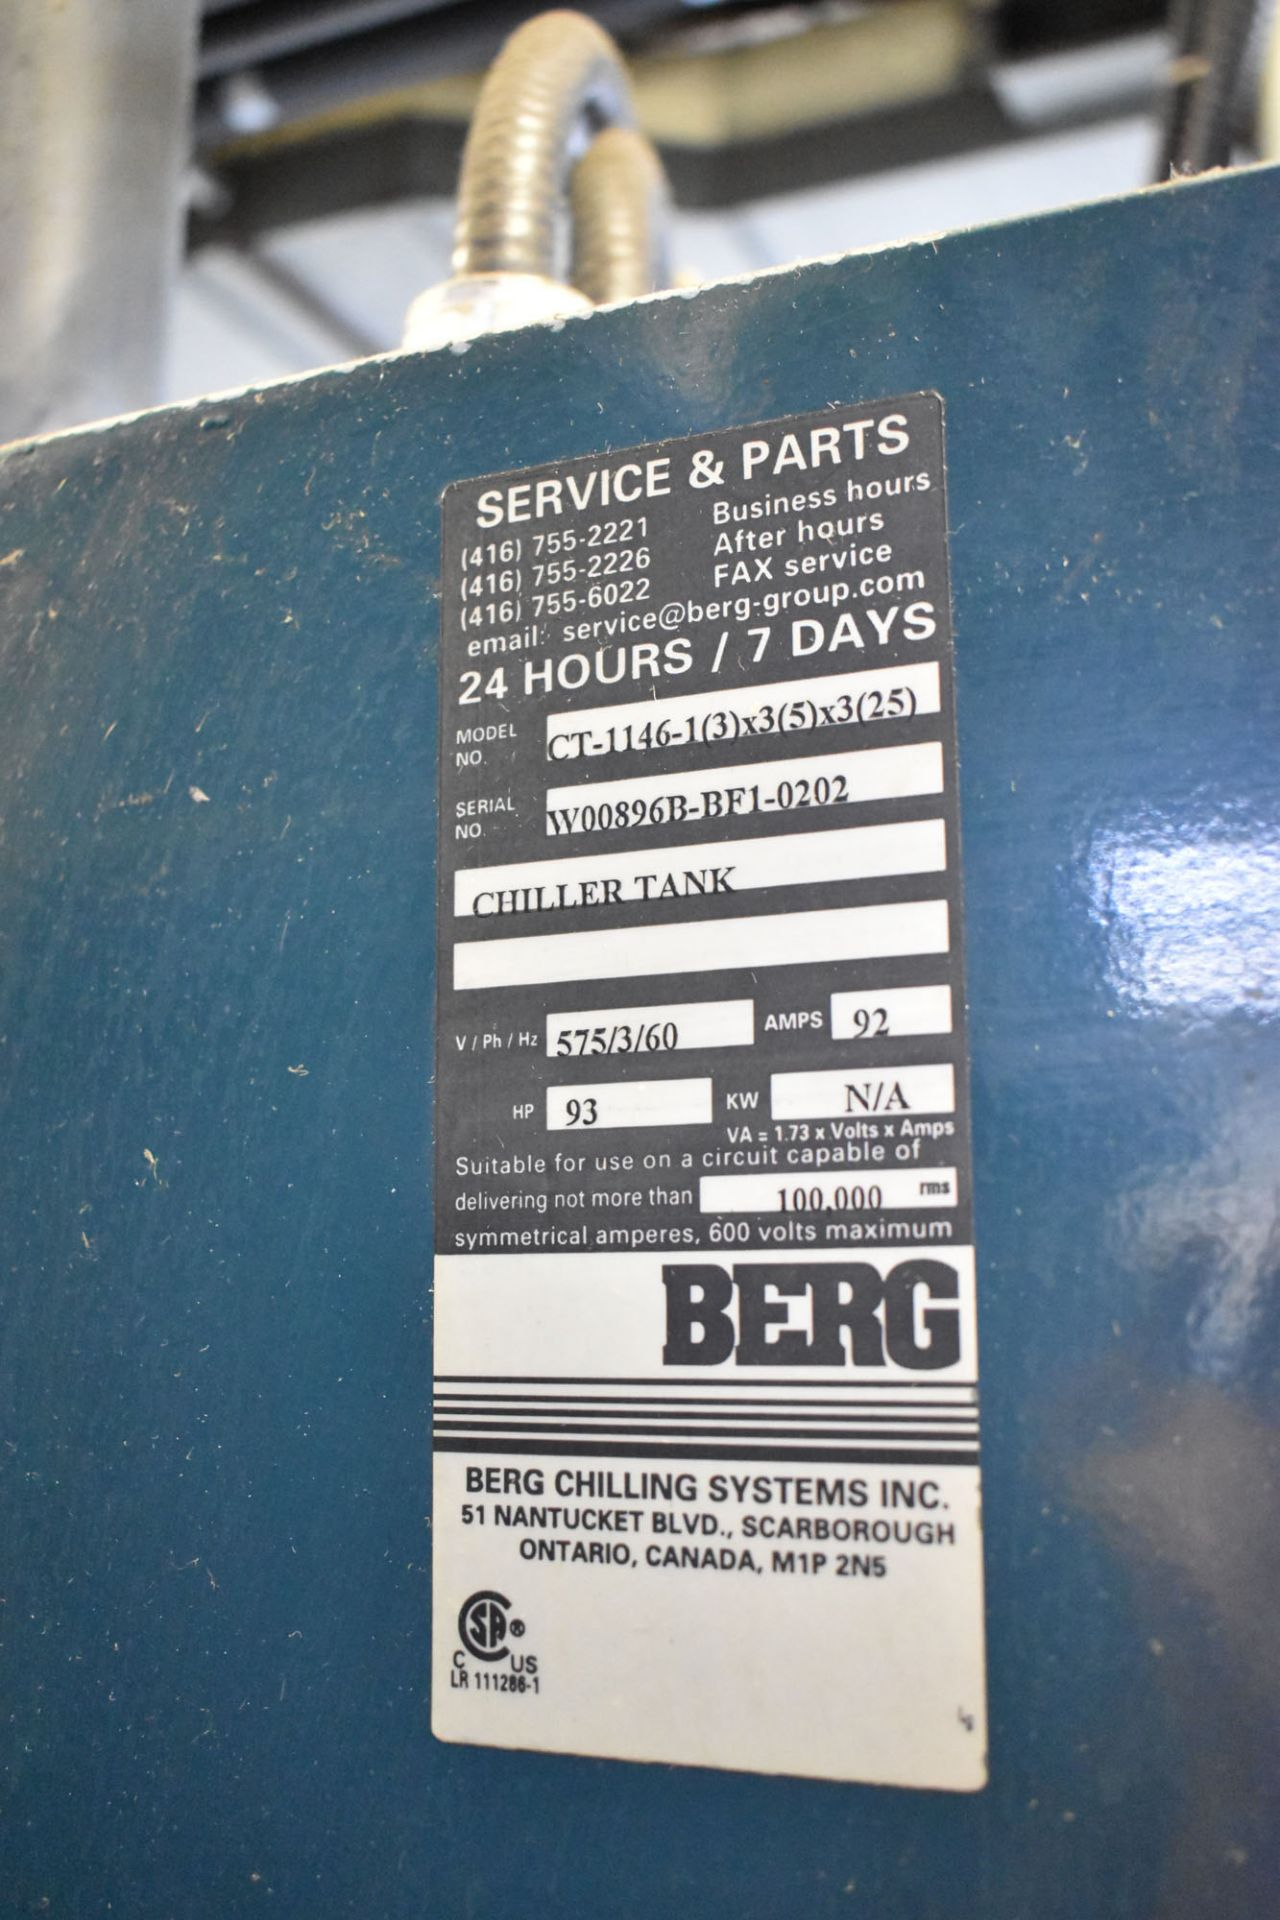 """BERG CT-1146 SKID MOUNTED CHILLER PUMP SET WITH 93 HP, 132""""X48""""X76""""H TANK, BERG 20 HP AUXILIARY - Image 5 of 6"""